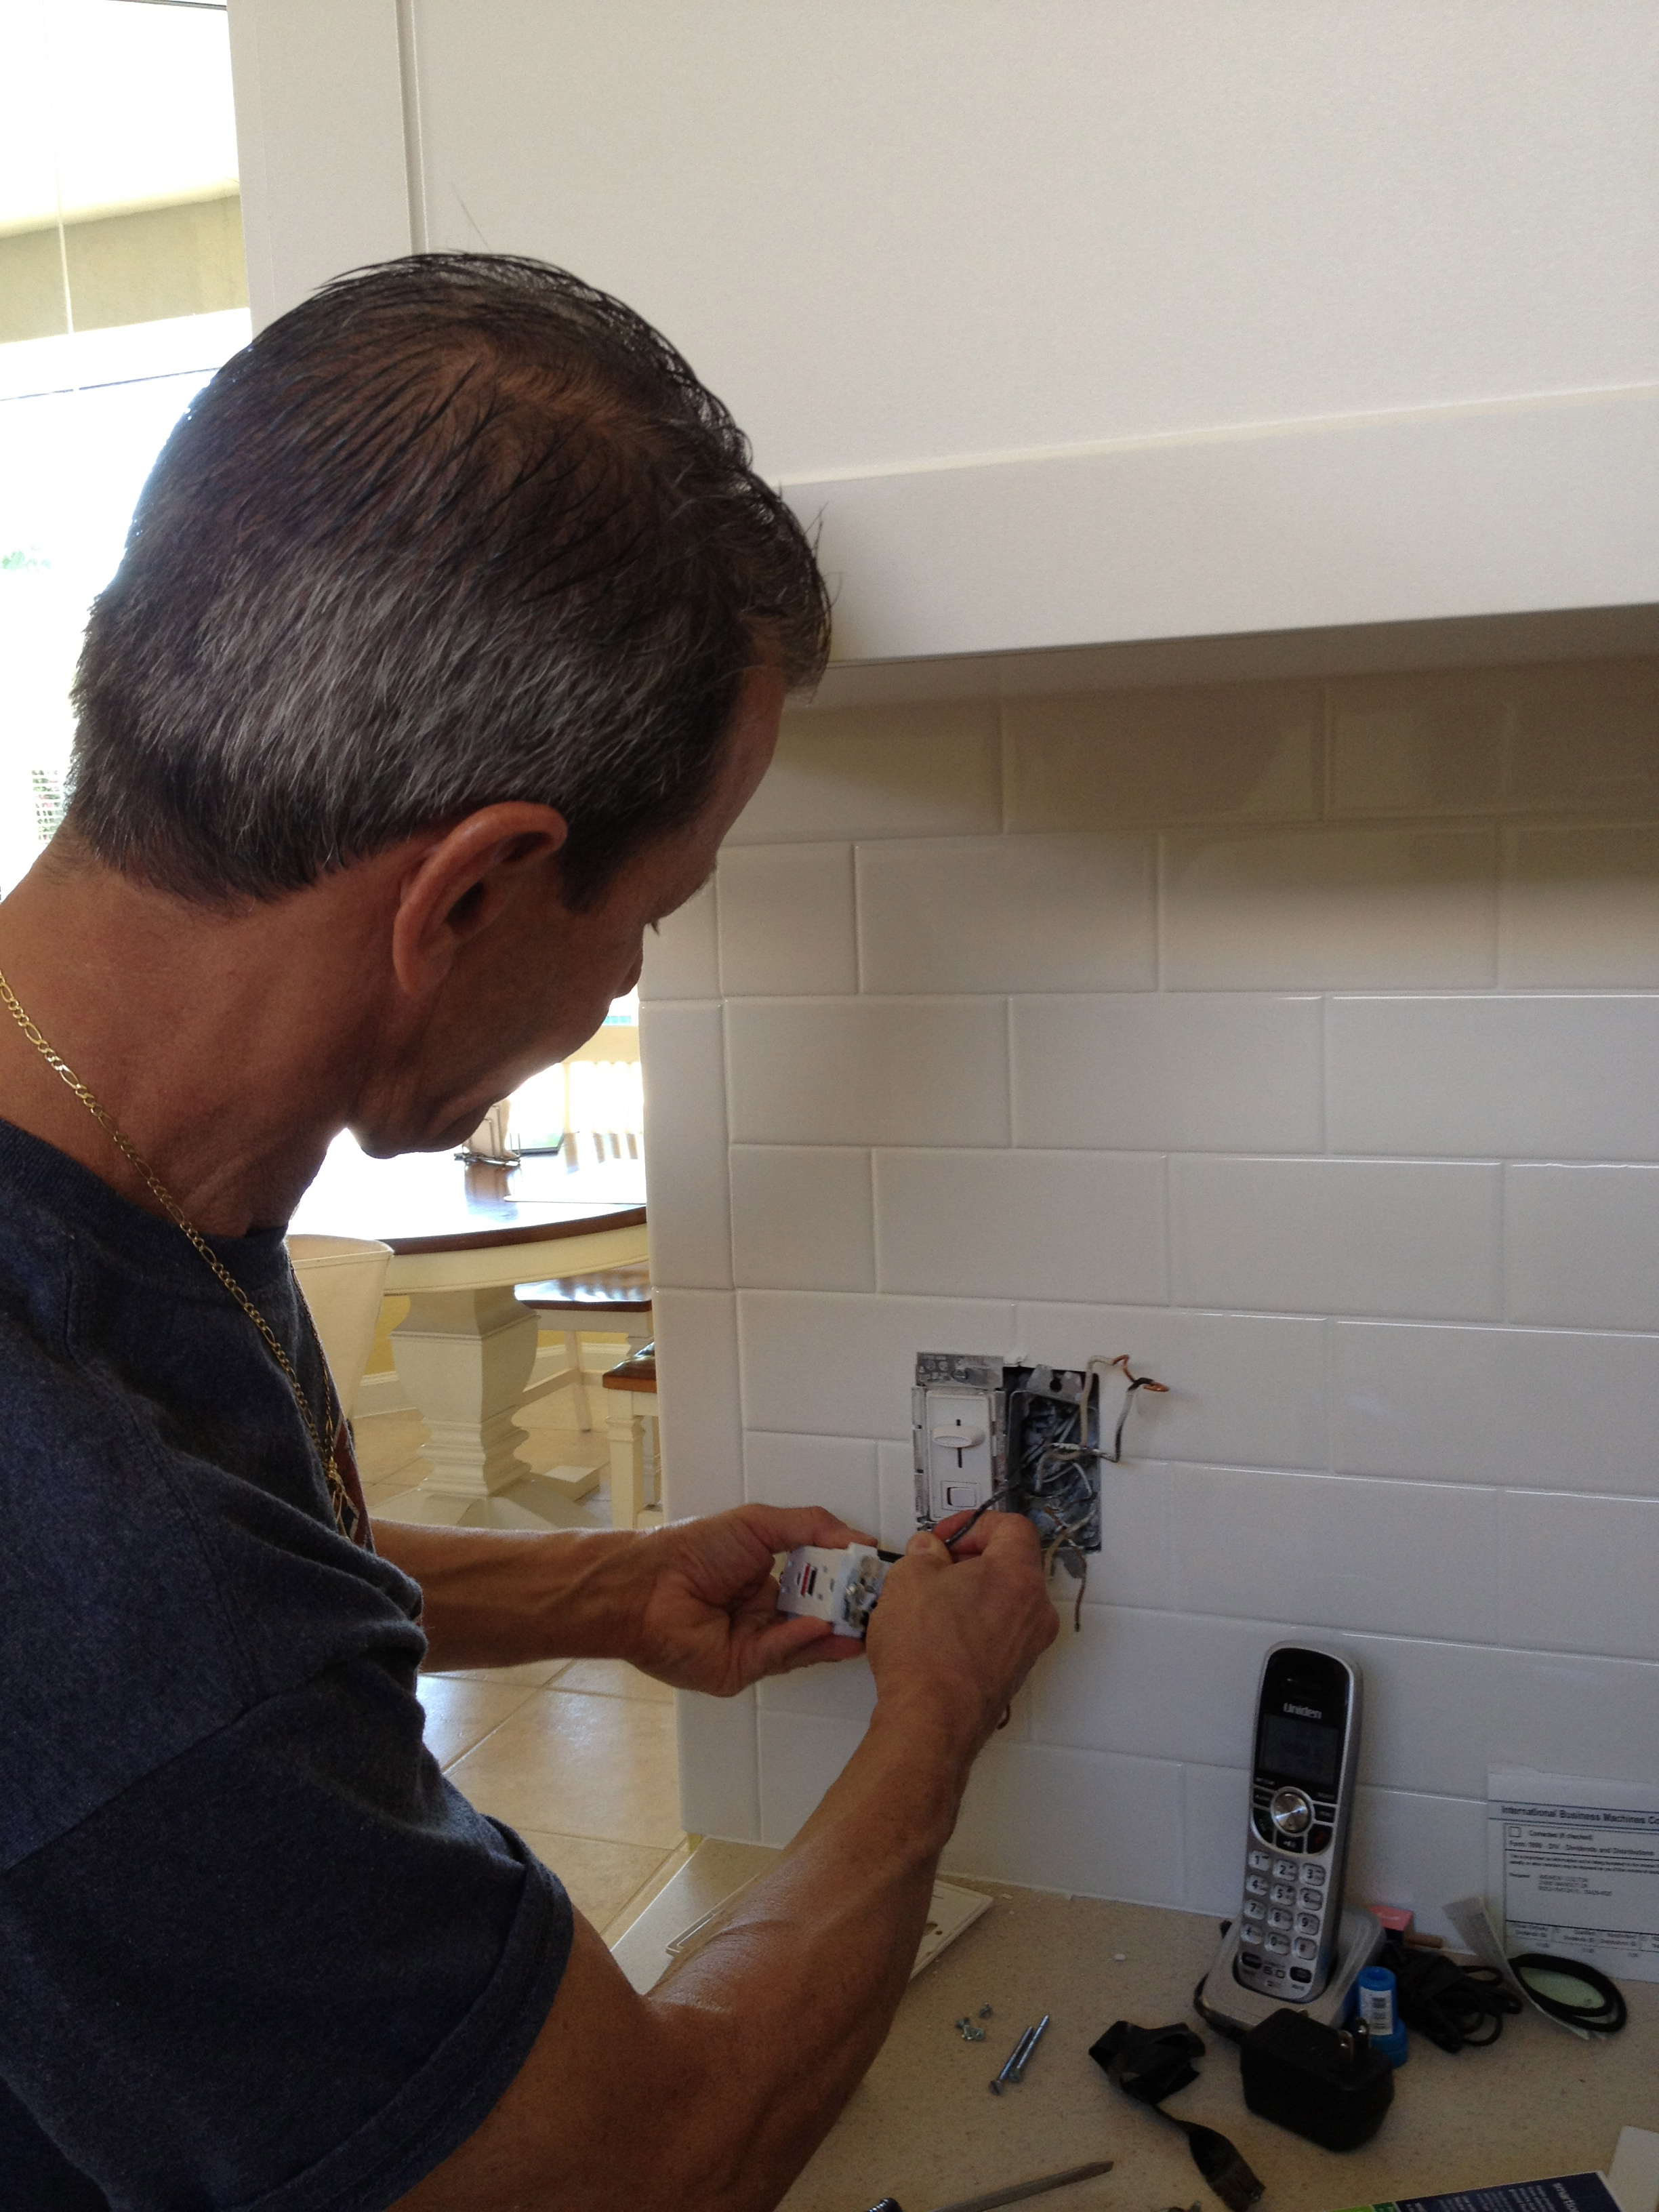 Electrician Allen Shapiro Determining Why a GFI Circuit Tripped in a Boca Raton Home.